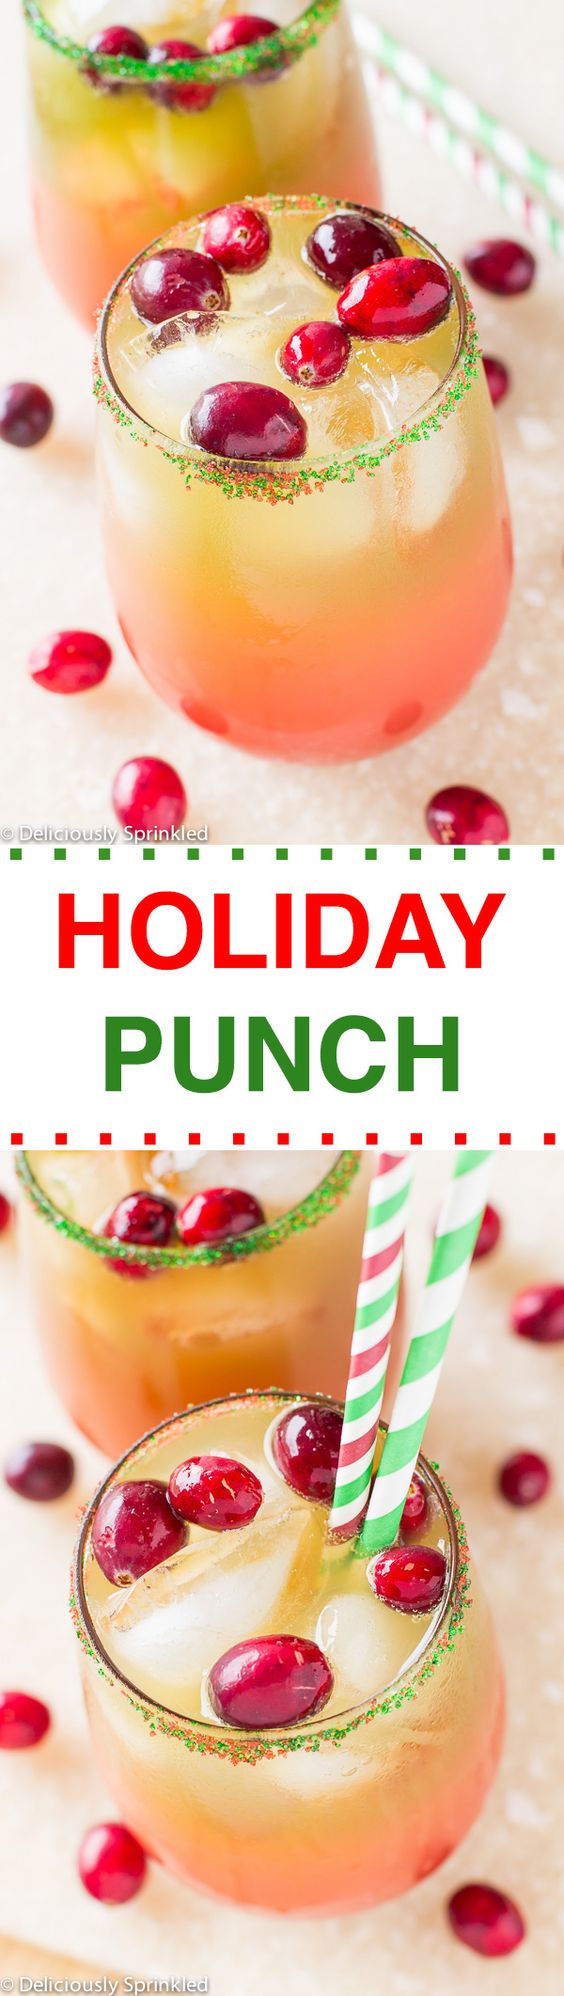 Holiday punch recipe, Holiday punch and Punch recipes on Pinterest